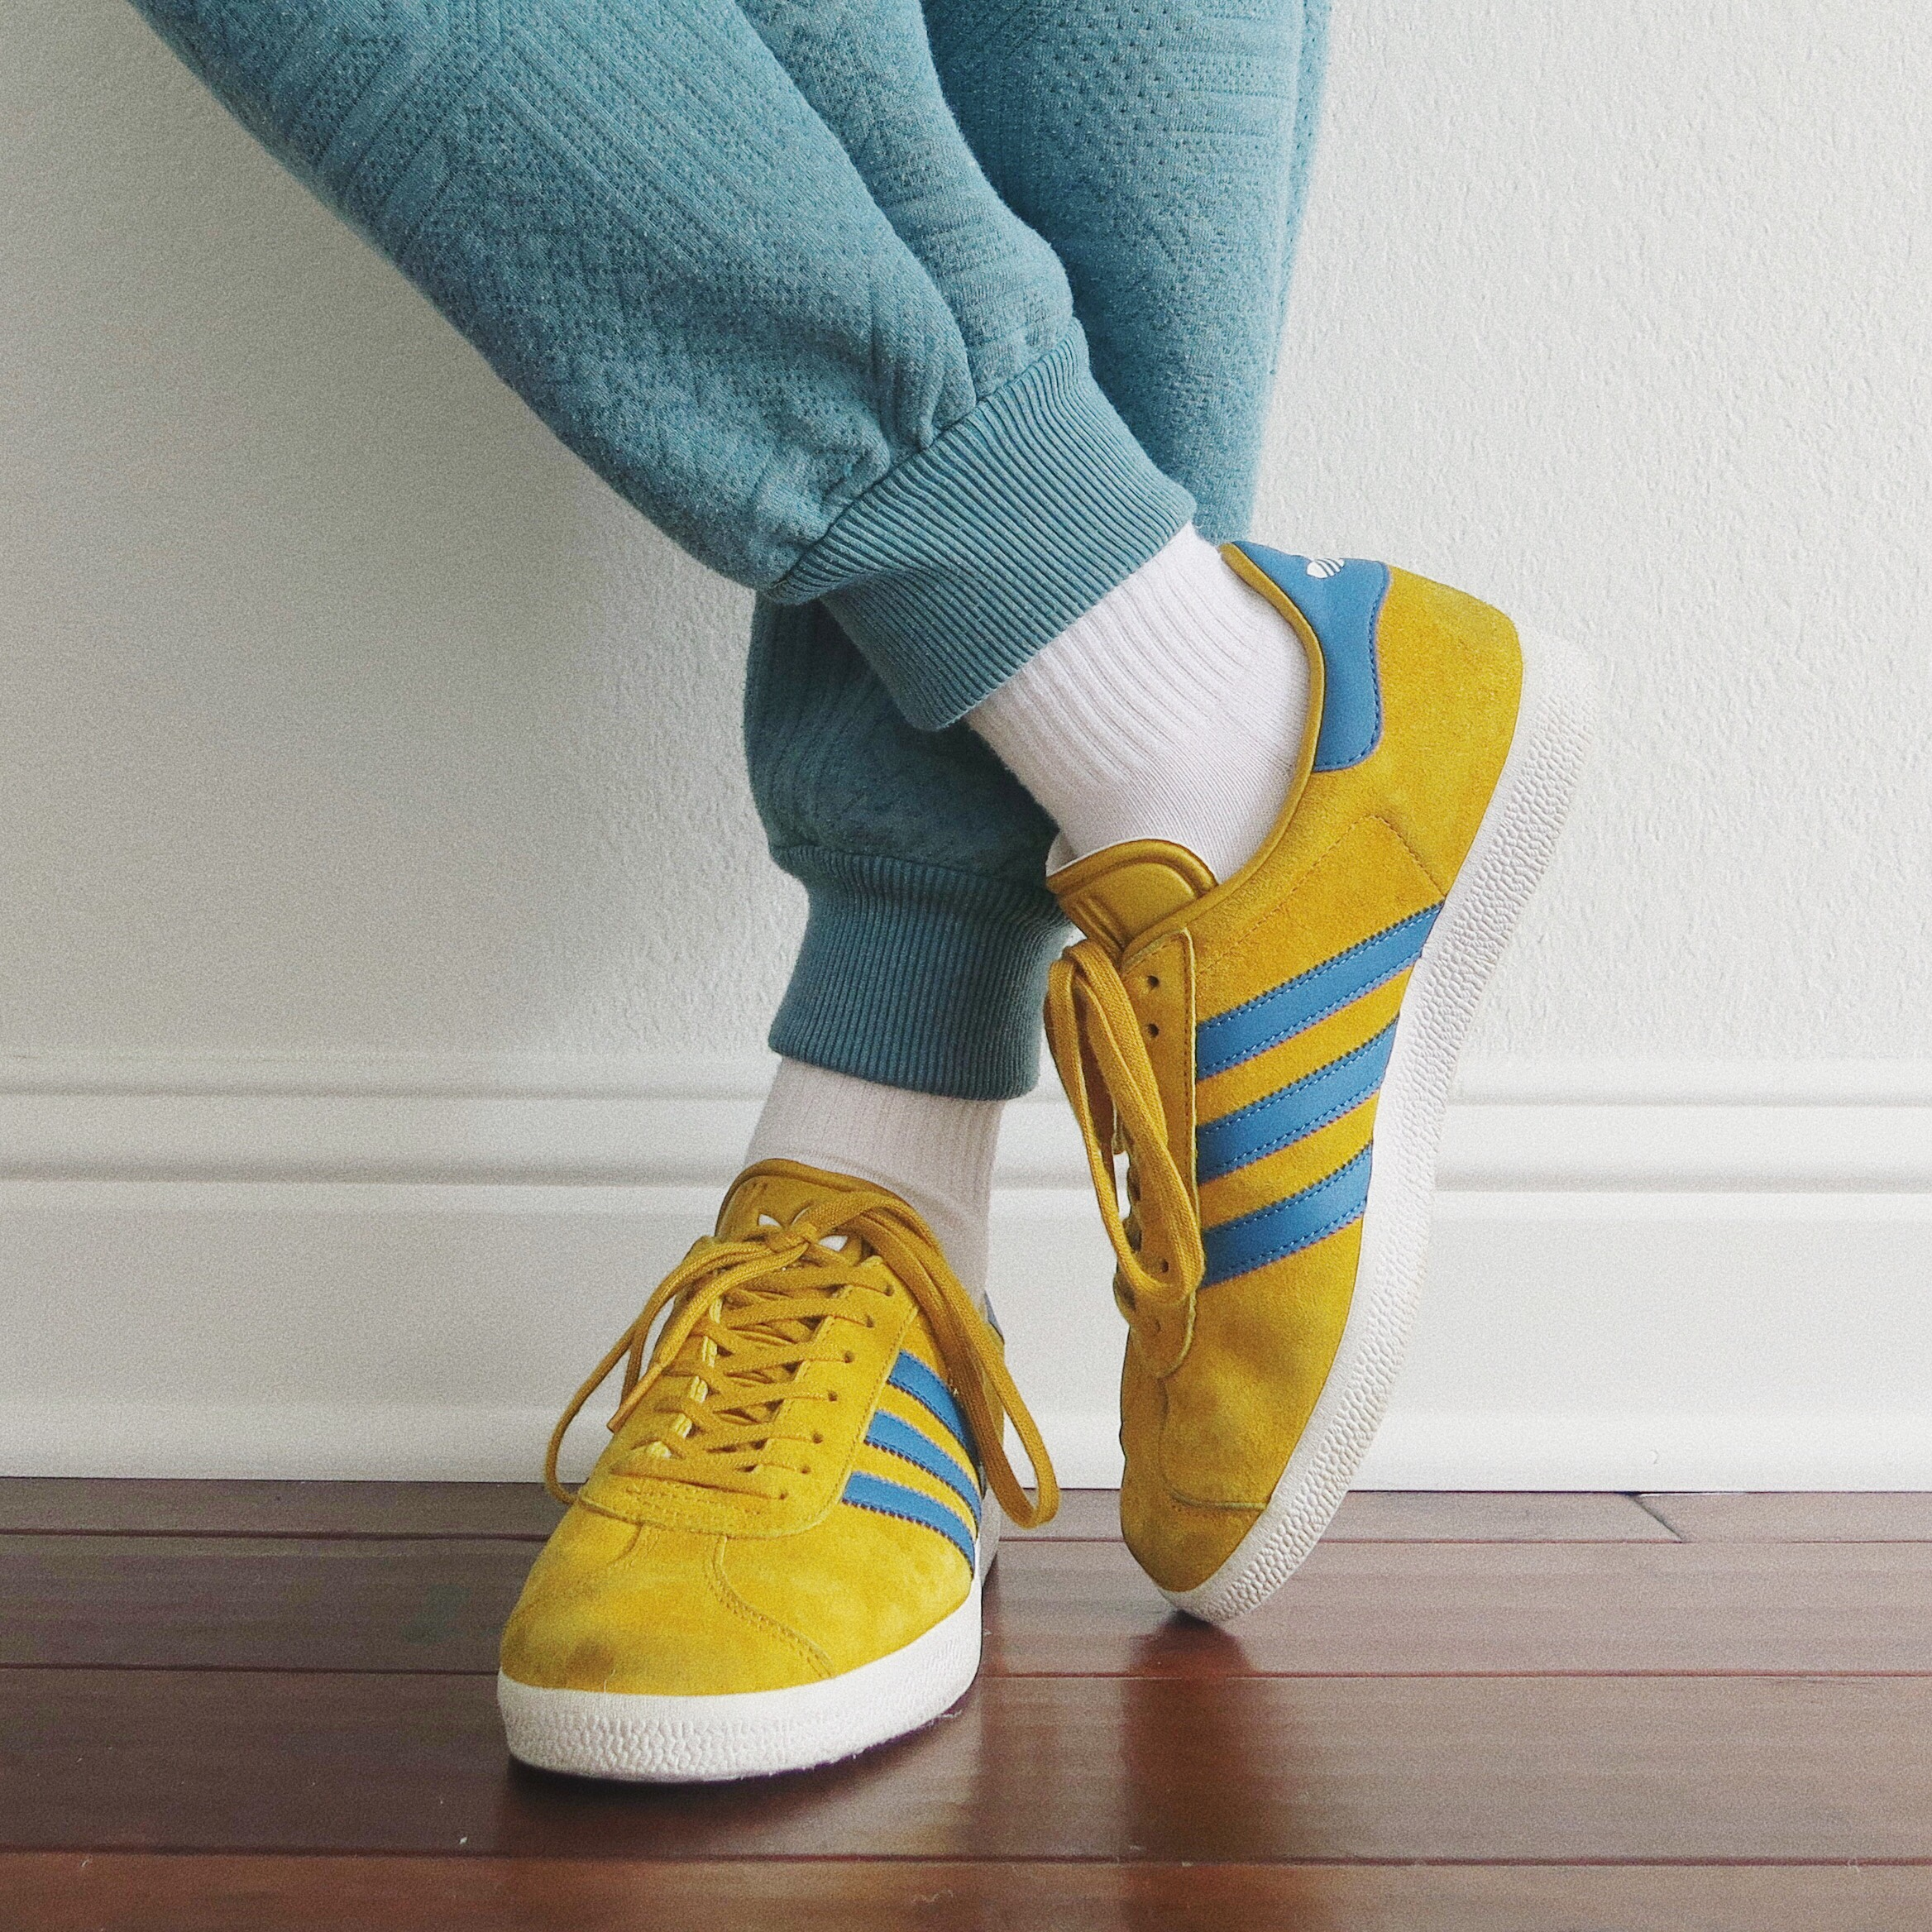 blue and yellow adidas gazelle shoes WOW these shoes...